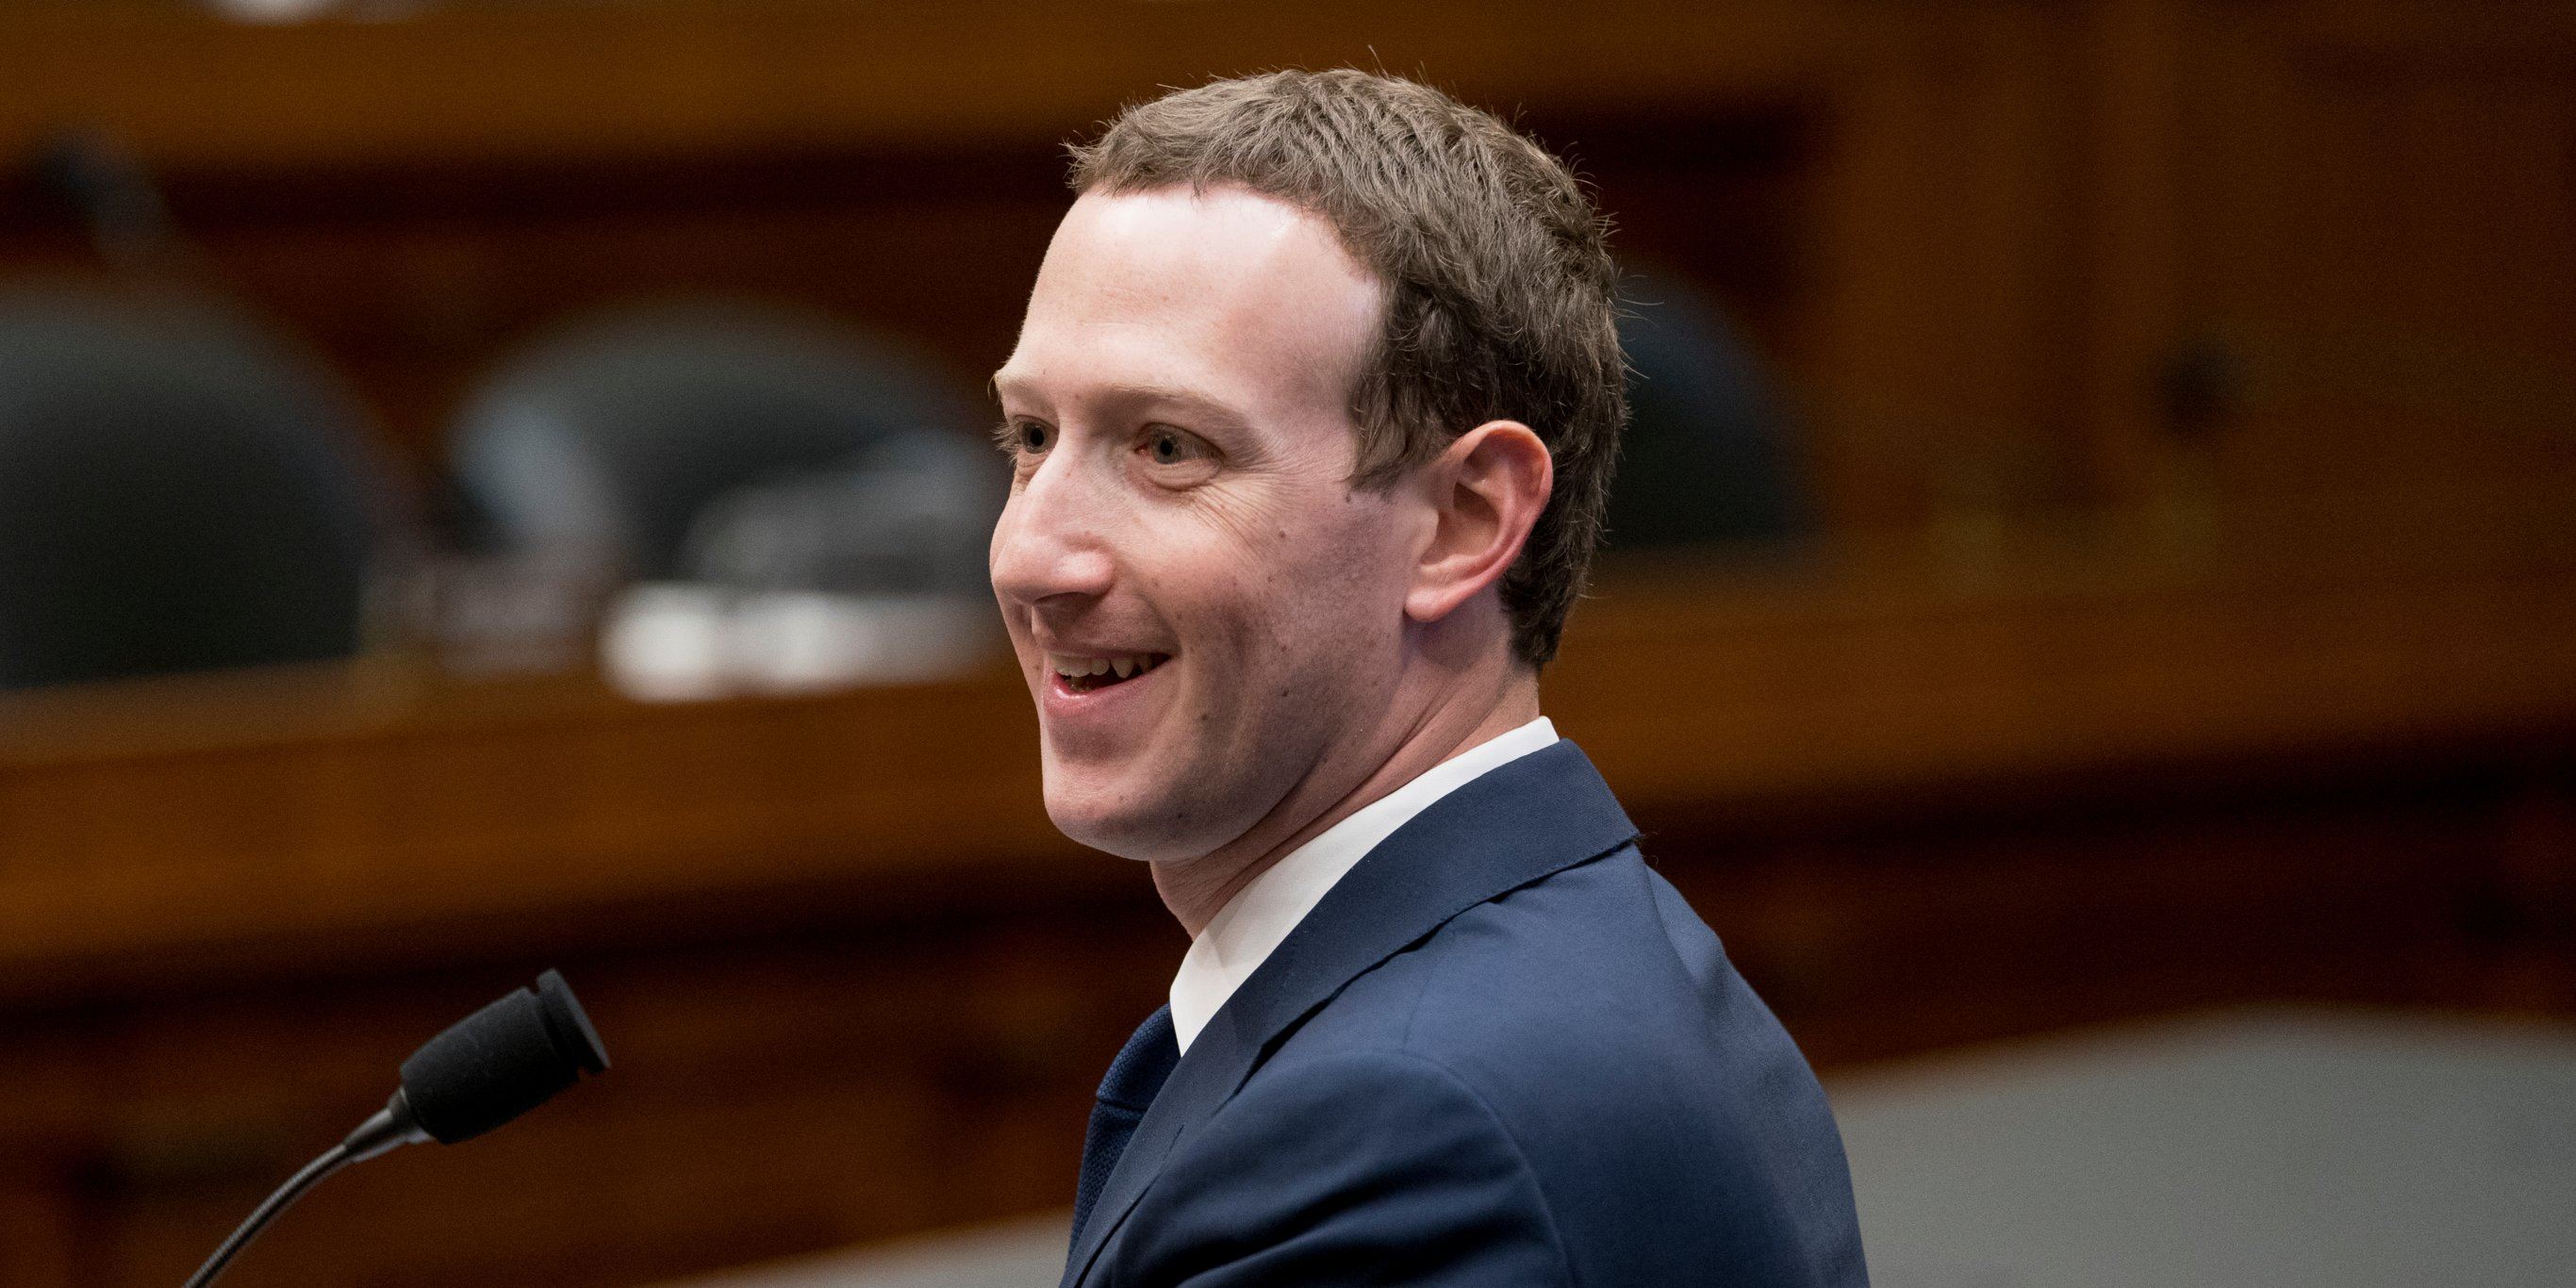 Mark Zuckerberg is privately schmoozing with some of Facebook's biggest critics in Washington (FB)